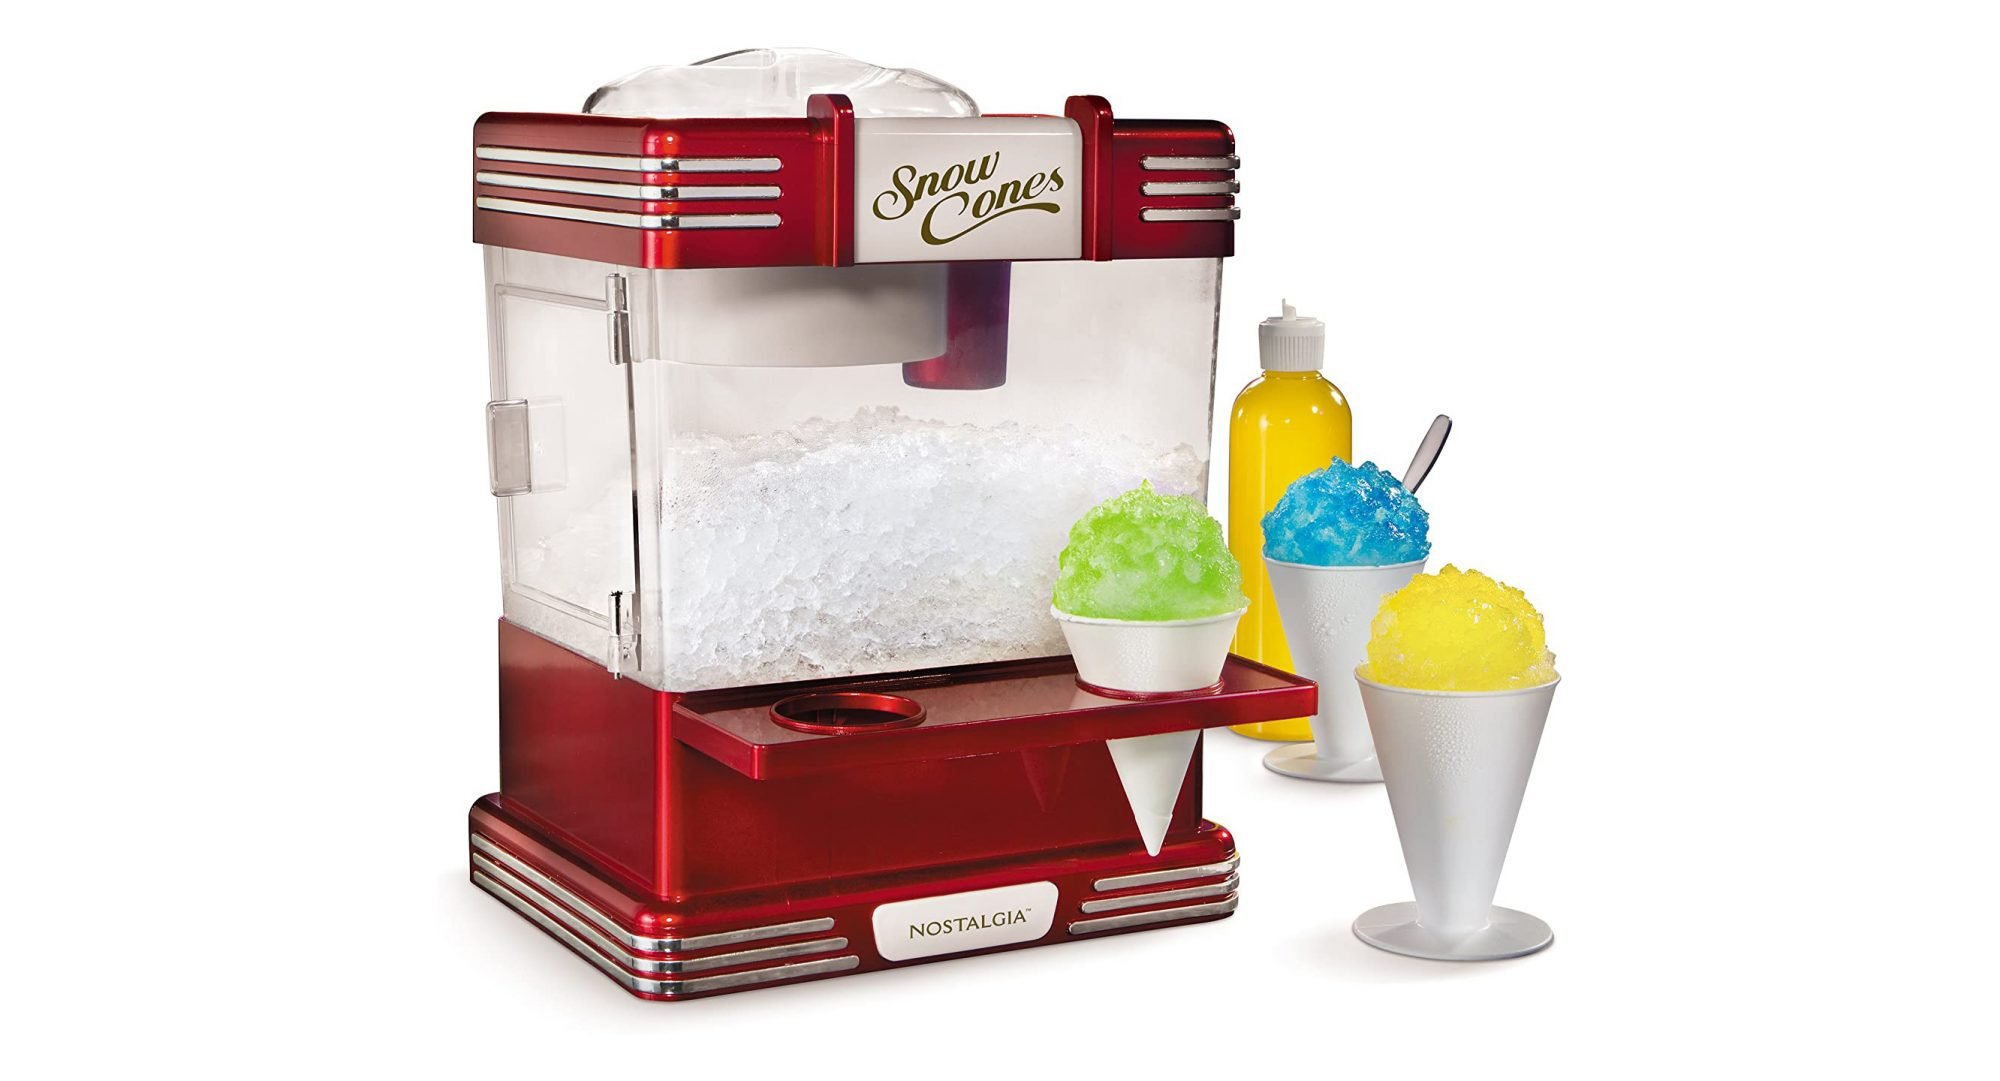 Amazon Best Selling Snow Cone Machine